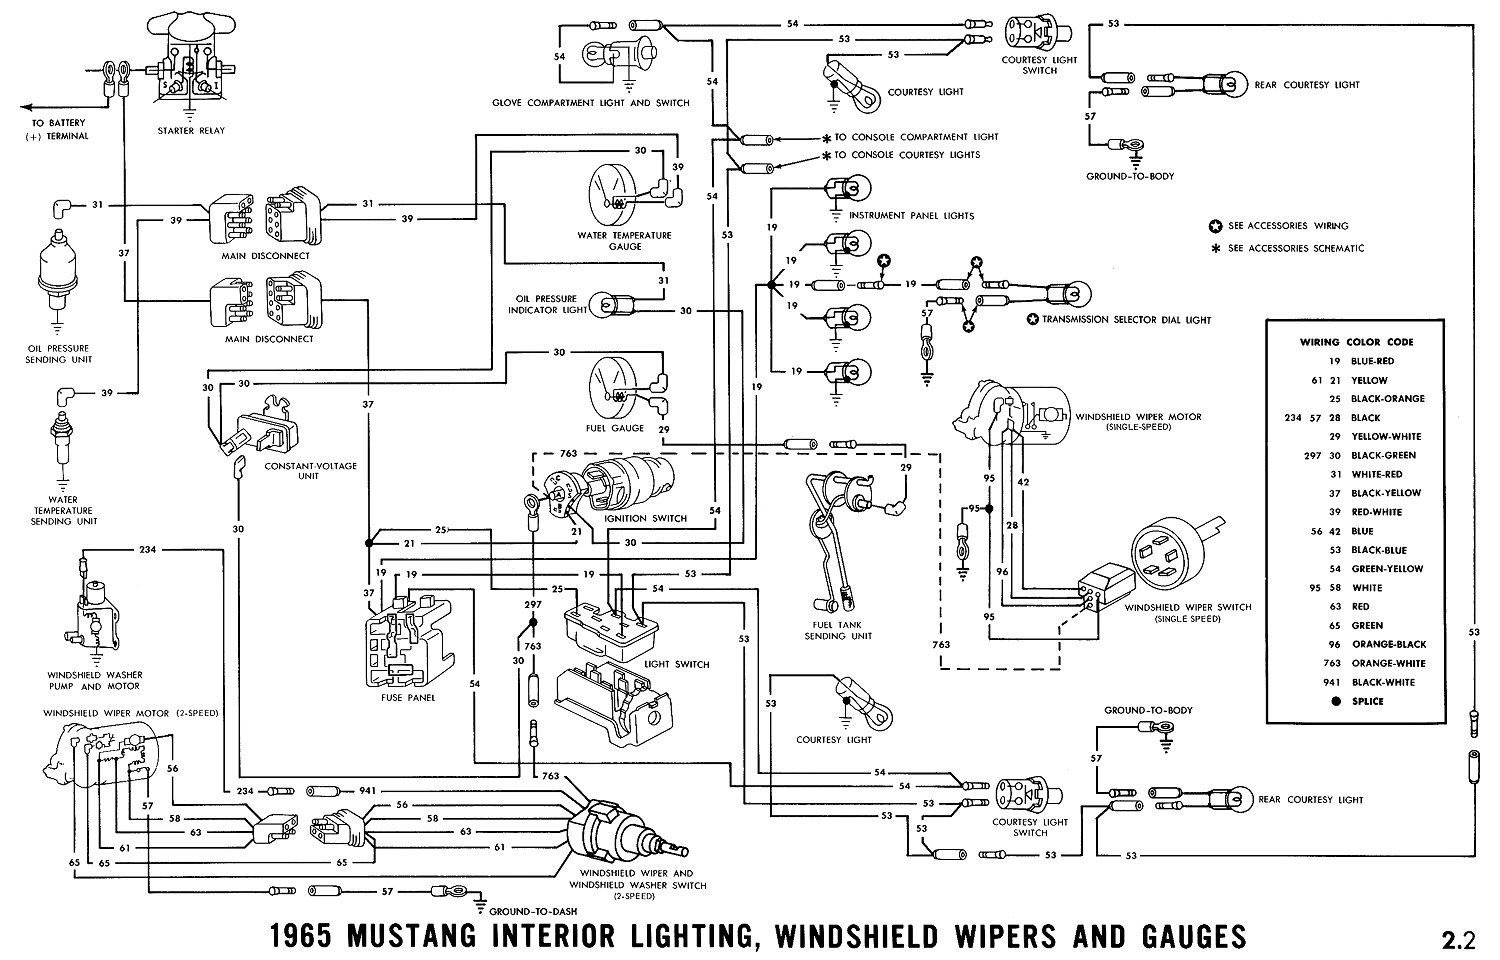 1965g 1965 mustang wiring diagrams average joe restoration 66 mustang wiring diagram at nearapp.co